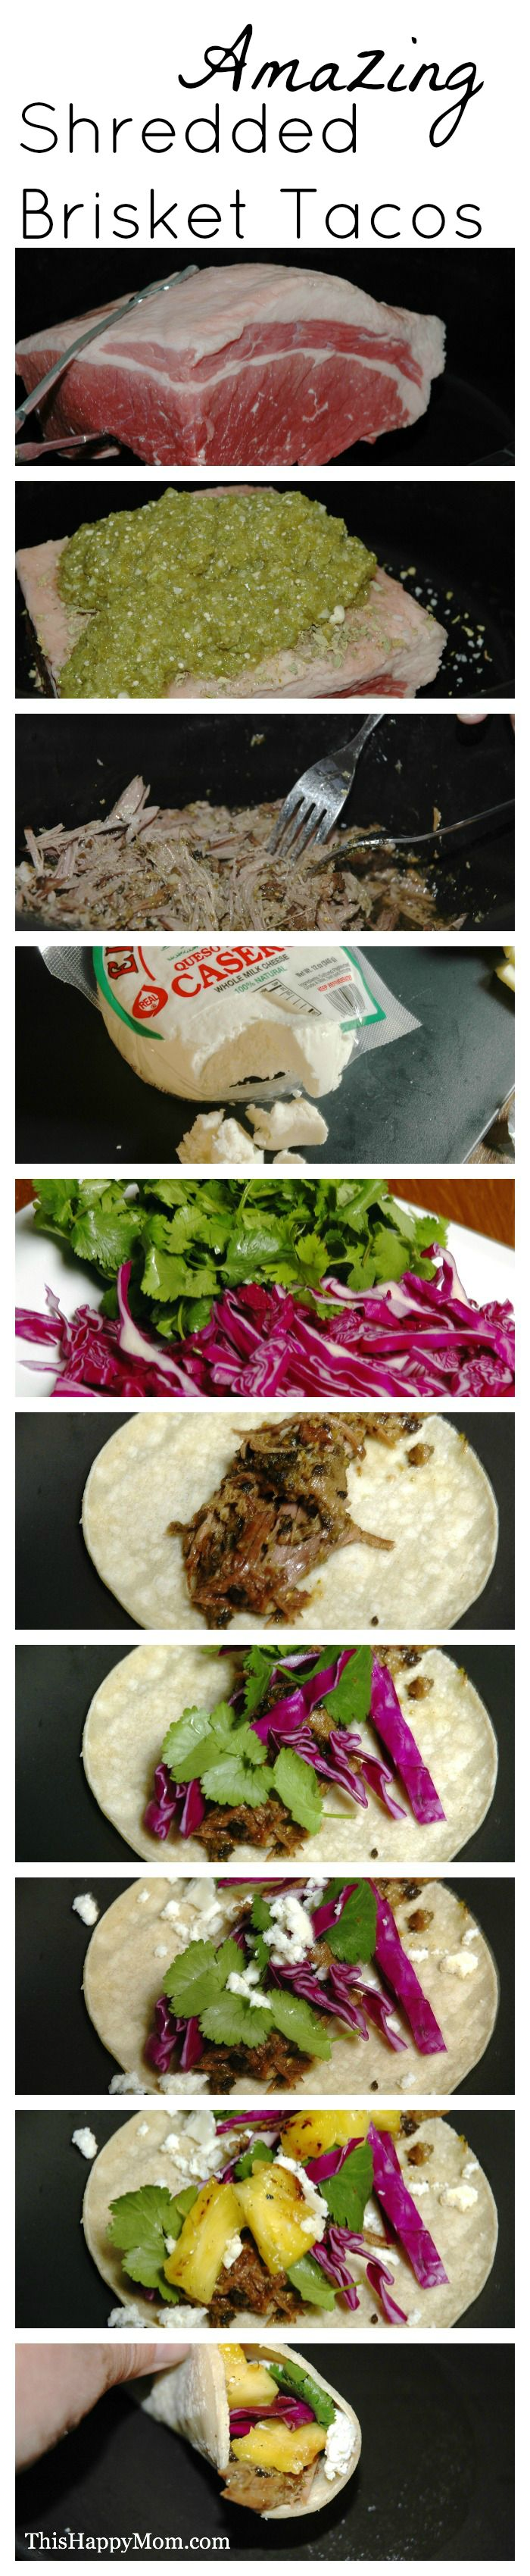 Amazing Shredded Brisket Tacos. Super easy crockpot recipe.